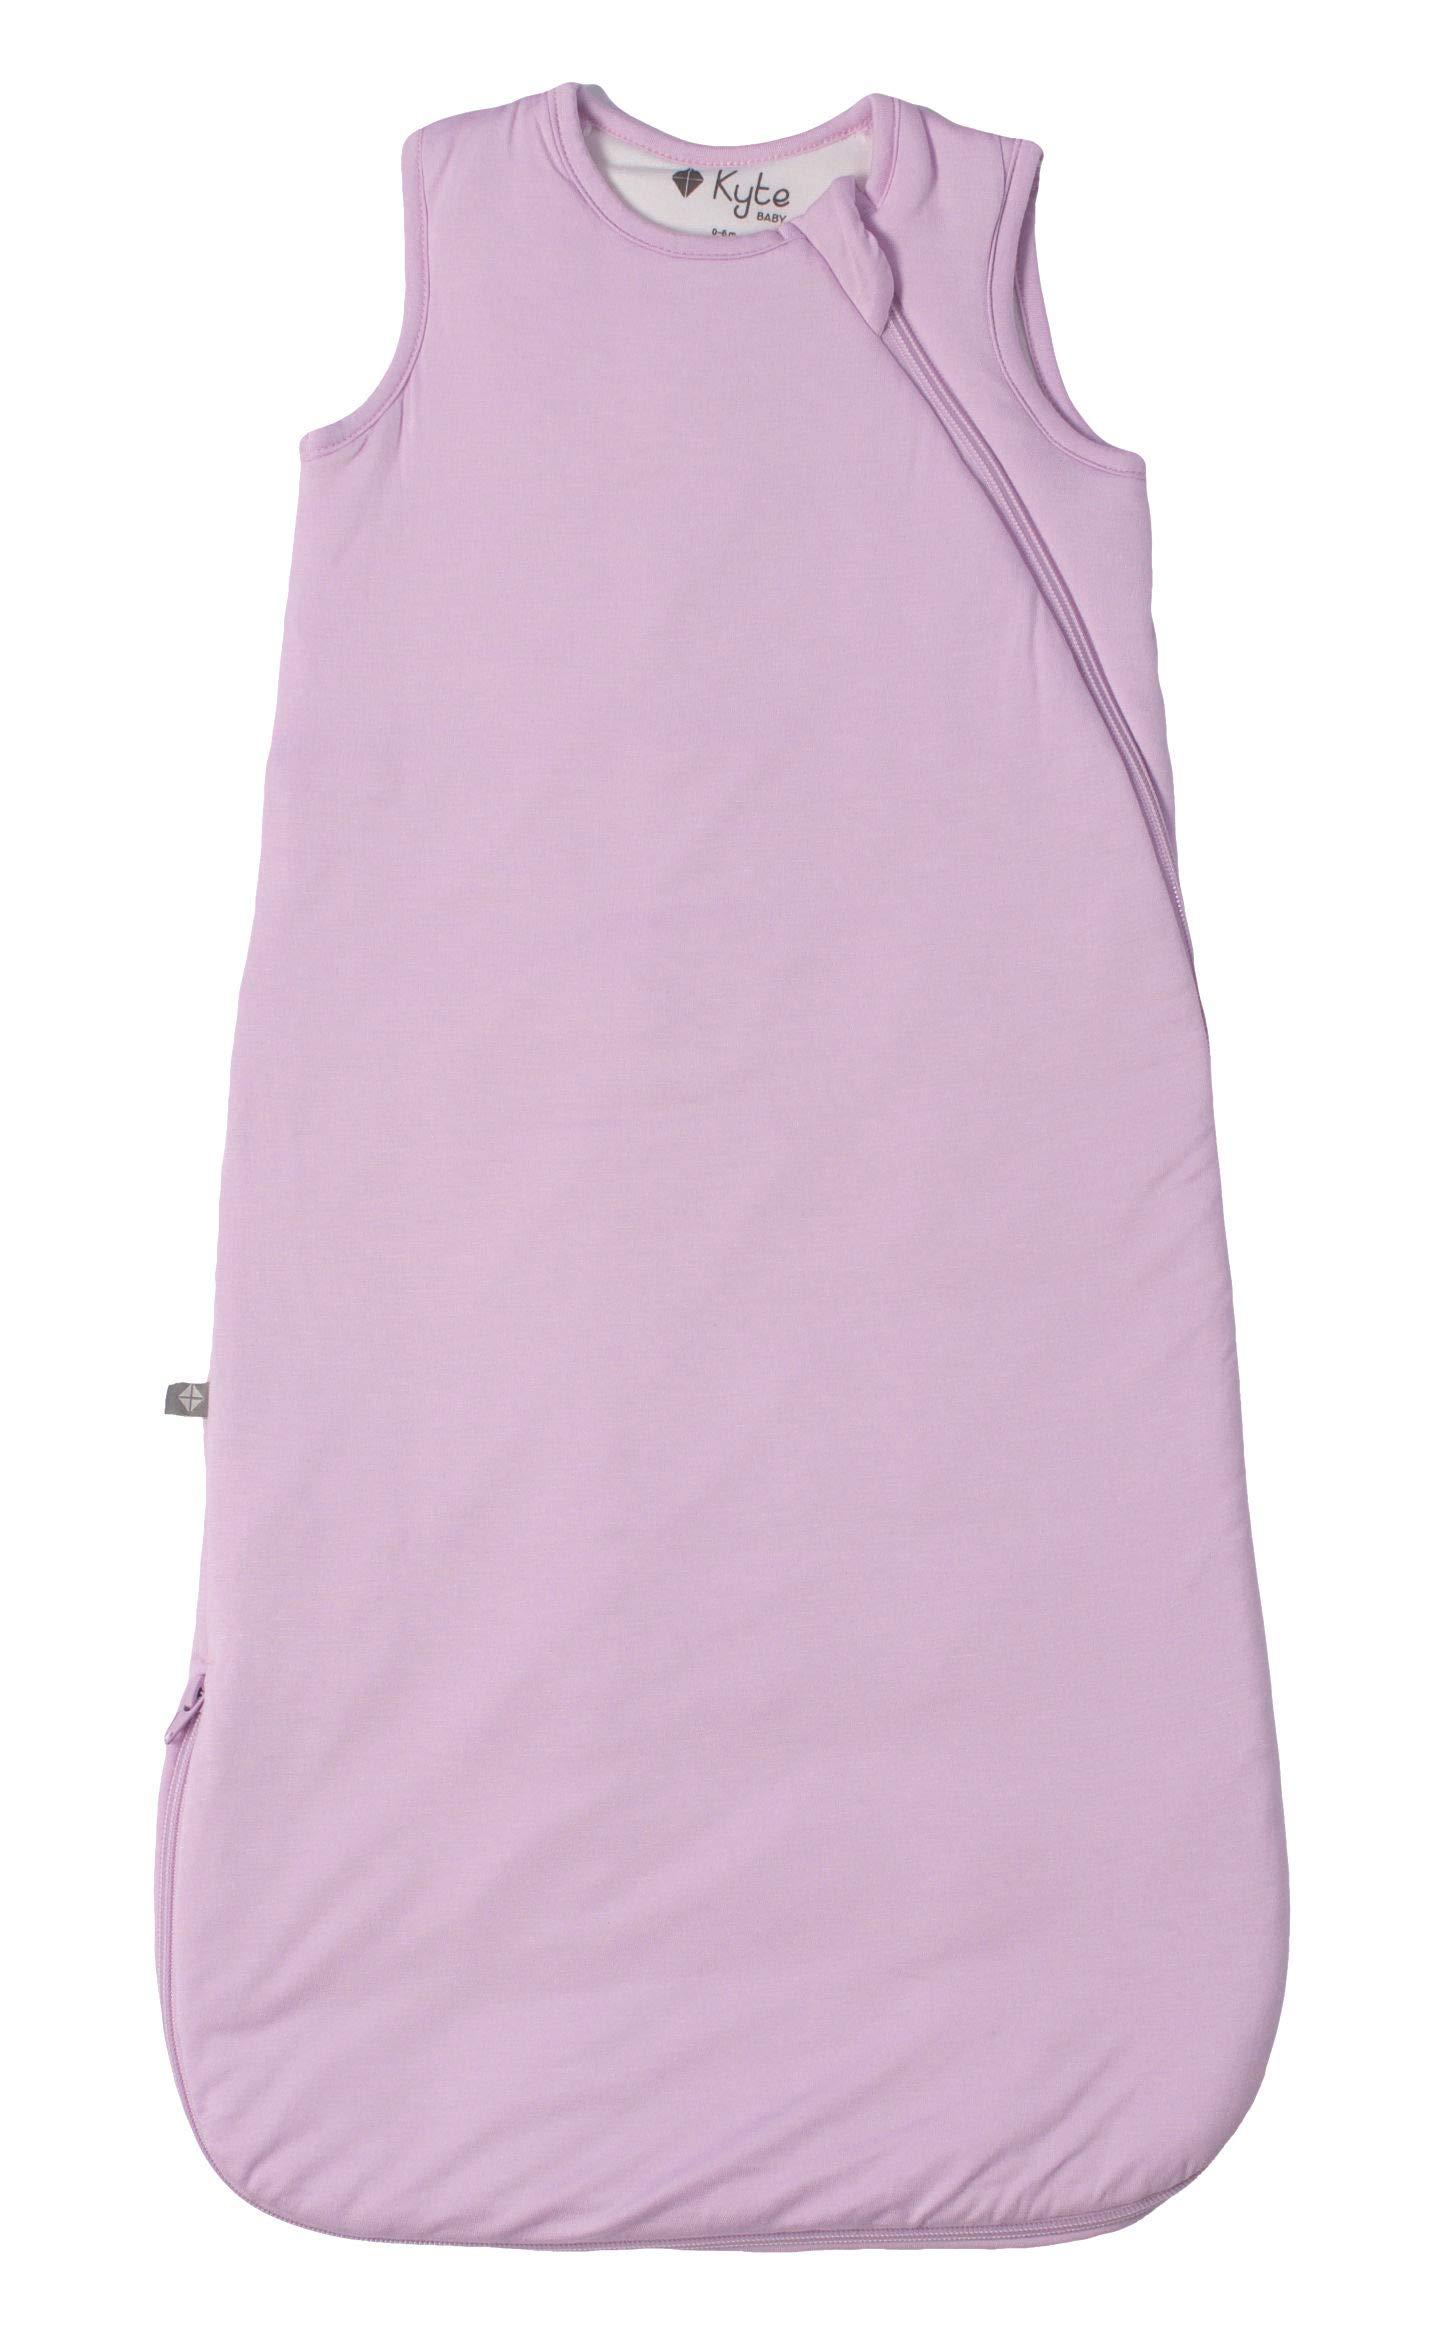 Kyte BABY Sleeping Bag for Toddlers 0 to 36 Months - Made of Soft Organic Bamboo Rayon Material - 1.0 Tog (0-6 Months, Mauve)